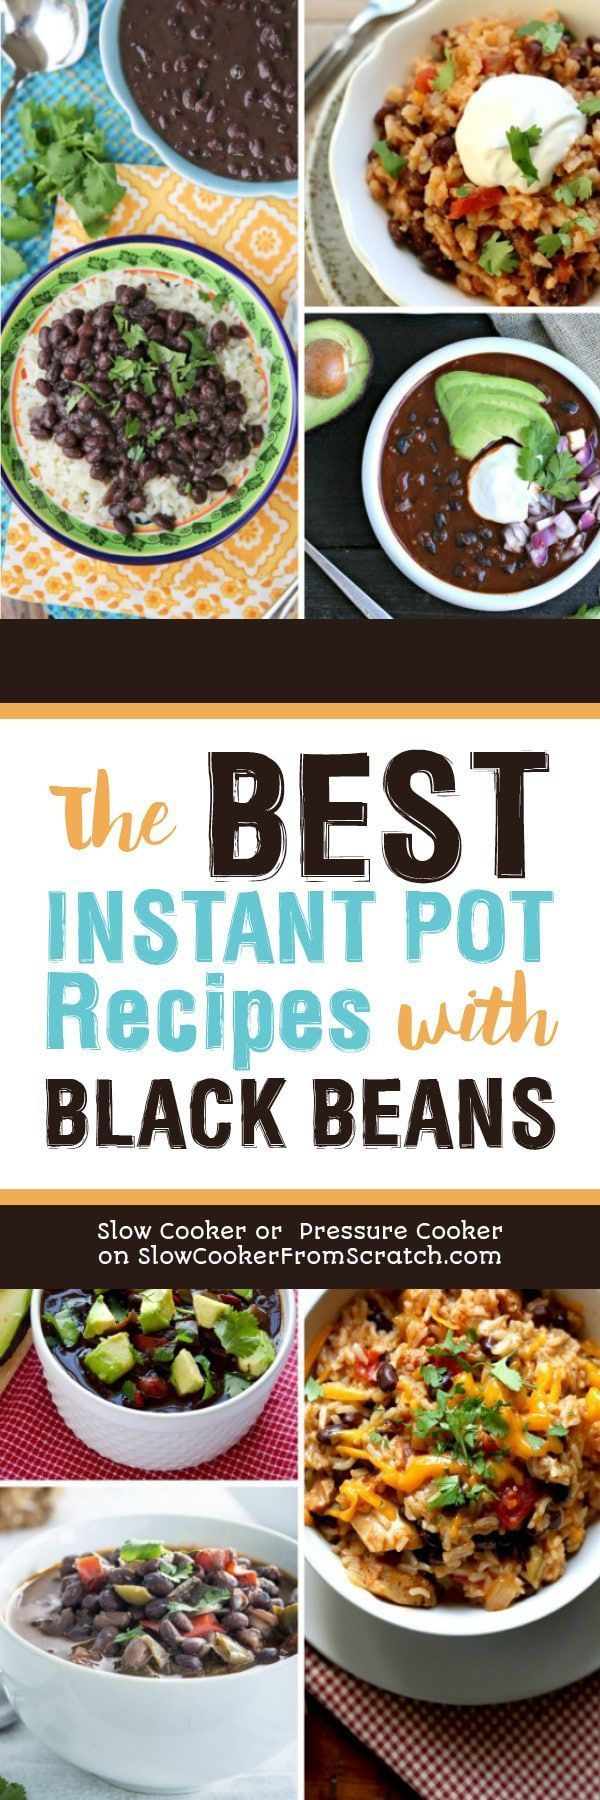 Are you a fan of black beans. Check out The BEST Instant Pot Recipes with Black Beans for ideas for black bean soups, black bean bowls, black bean dips, and of course ideas with black beans and rice! [found on Slow Cooker or Pressure Cooker at SlowCookerFromScratch.com] #InstantPot #PressureCooker #InstantPotBeans #InstantPotBlackBeans #PressureCookerBeans #PressureCookerBlackBeans